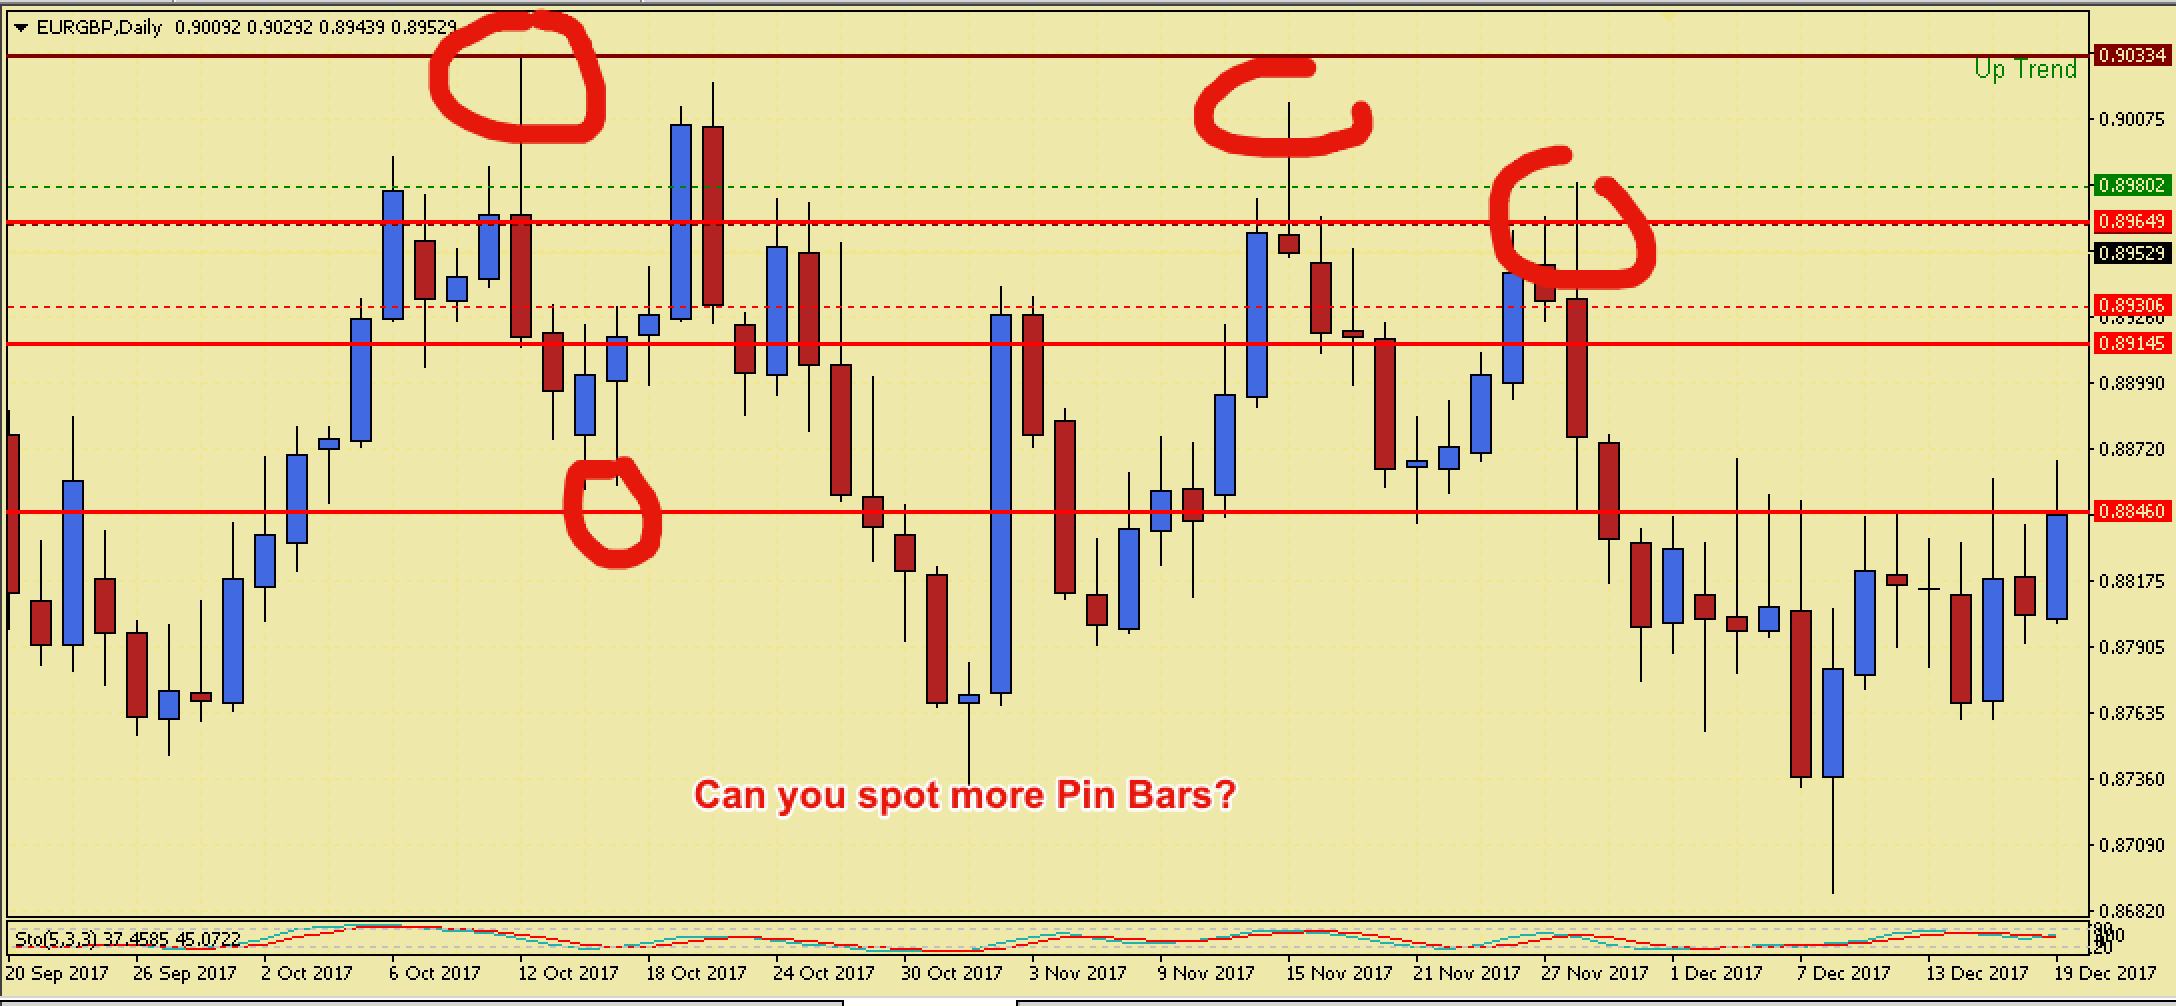 Trading the Pivot Points MT4 Indicators with Pin Bars